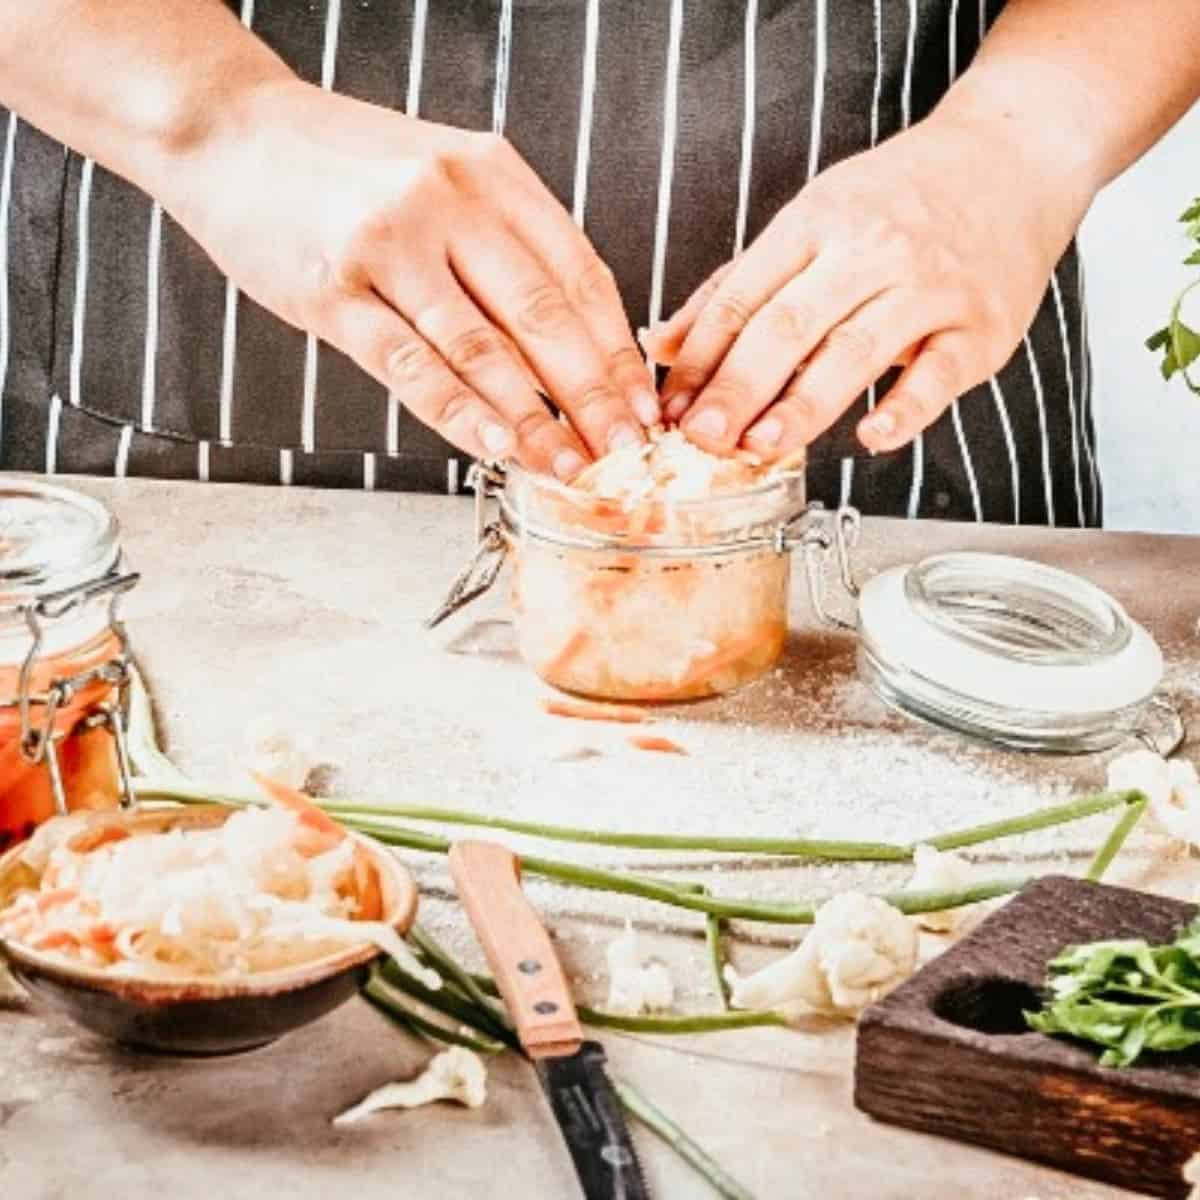 food preservation with fermenting fresh produce